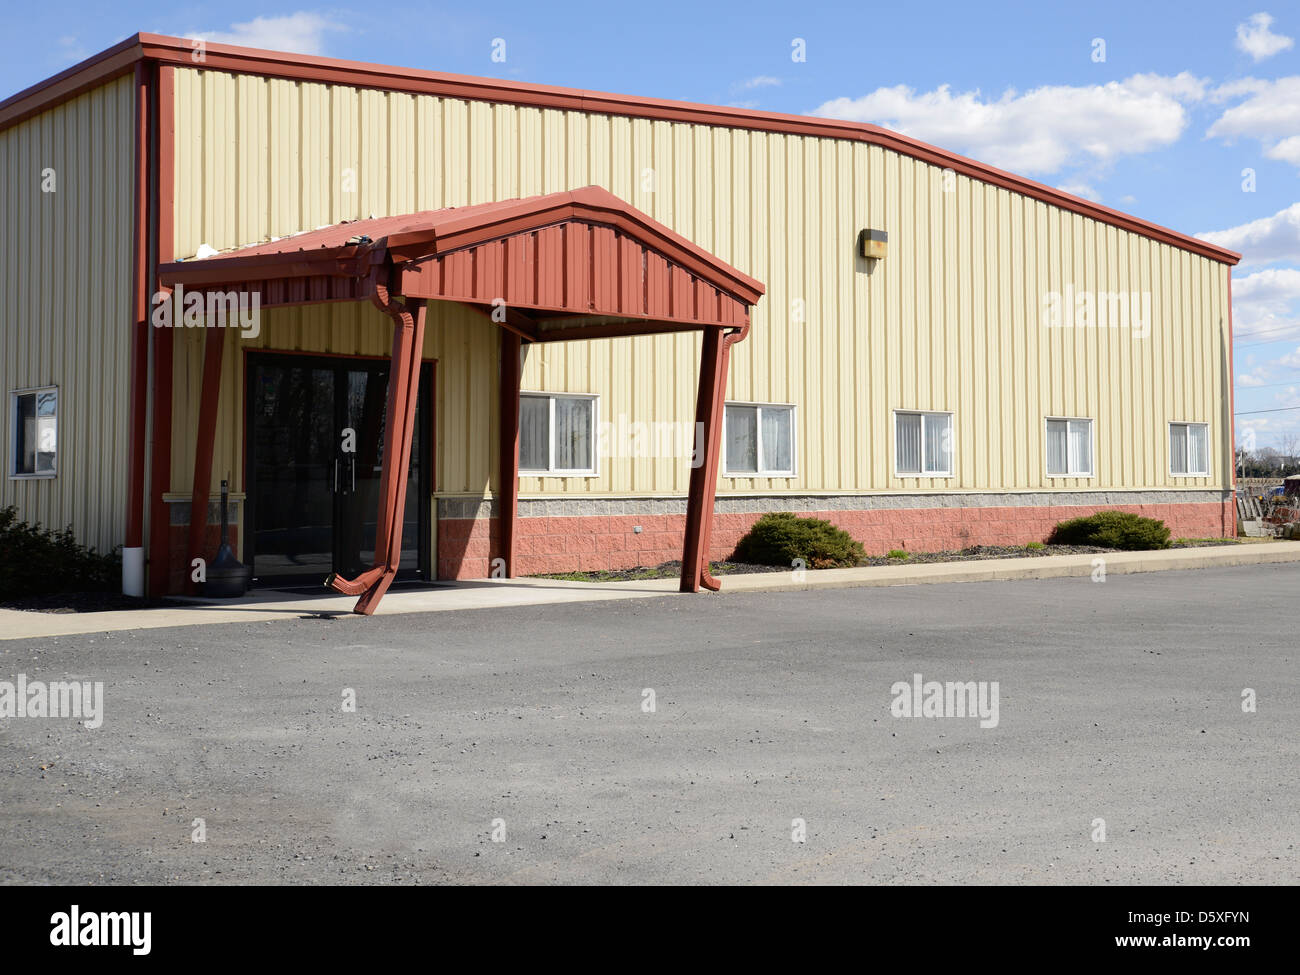 Exterior Of A Vinyl Sided Small Office Or Industrial Building   Stock Image